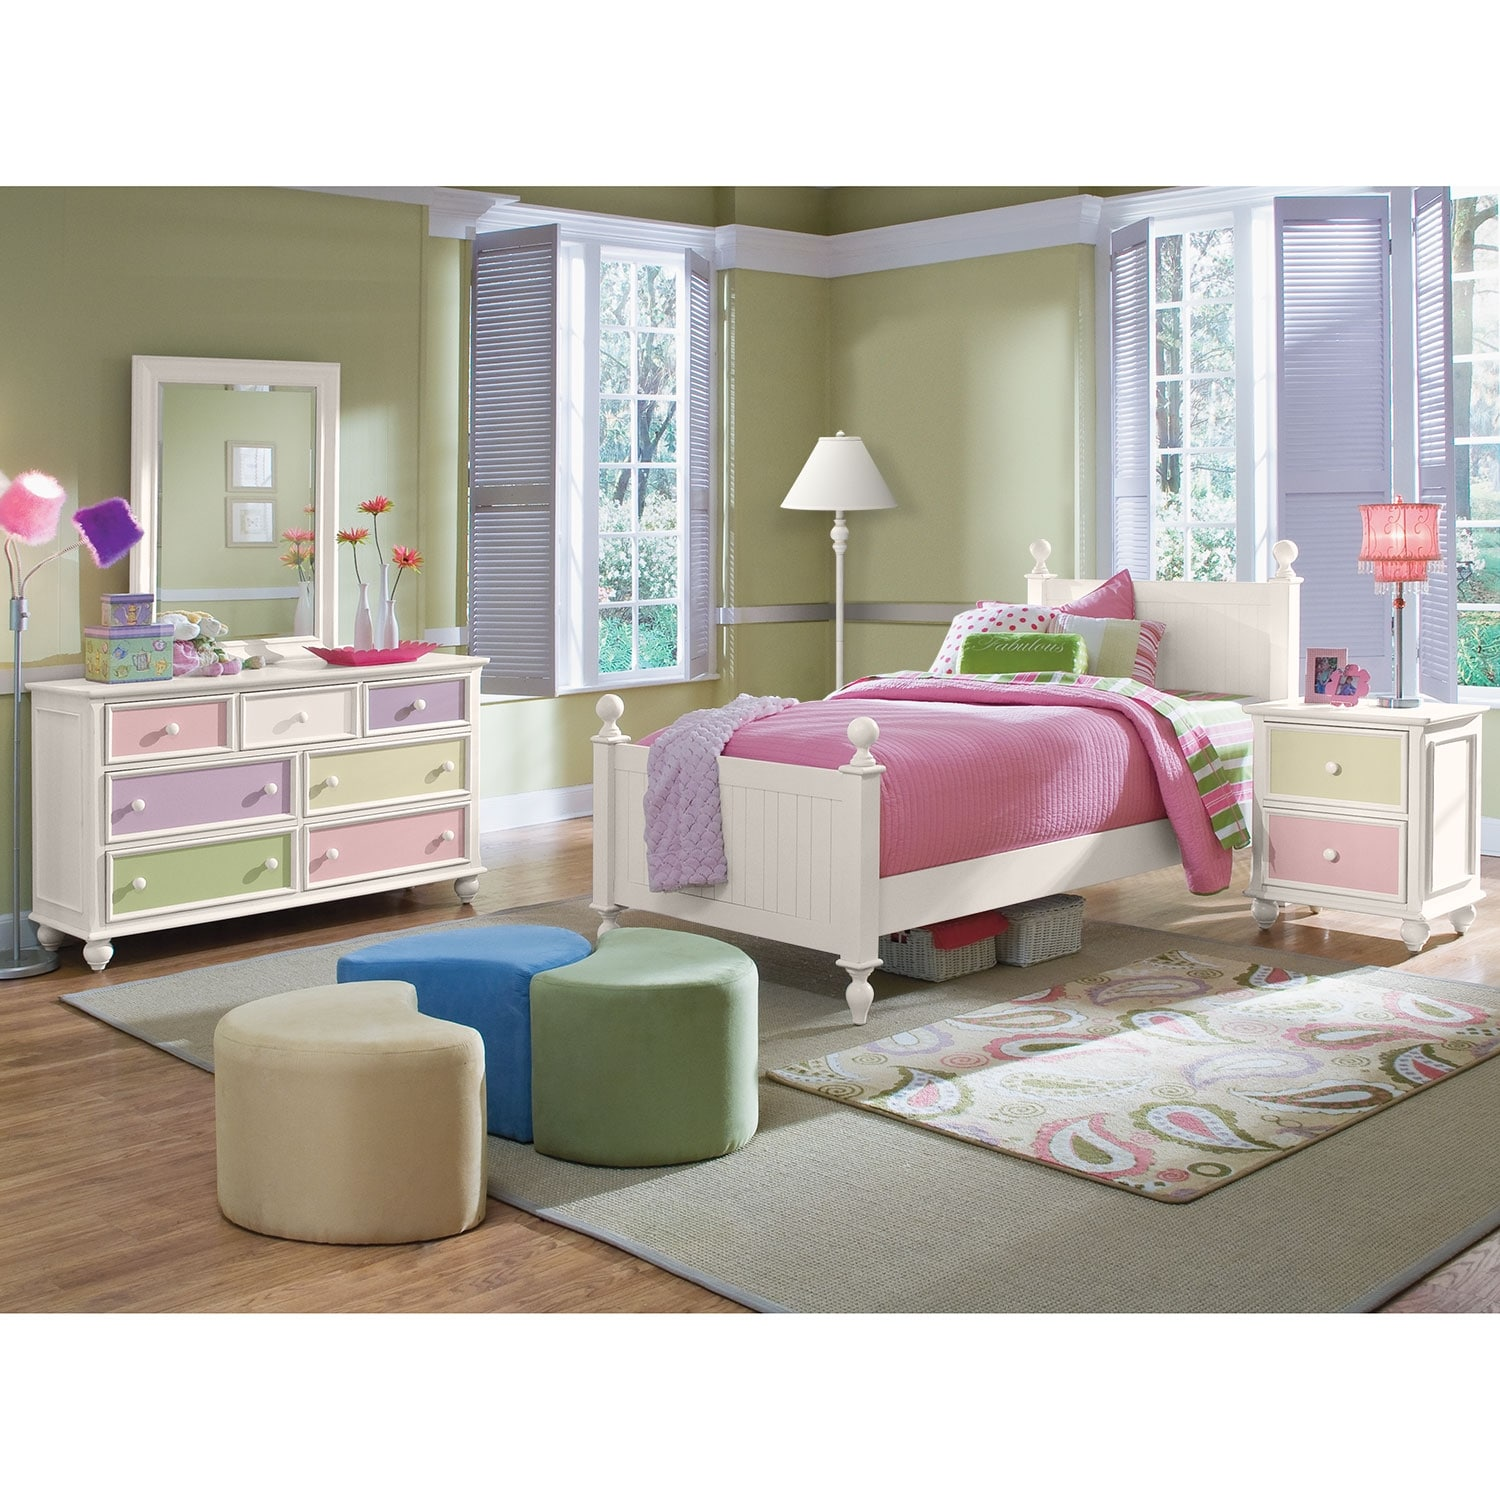 Colorworks 6-Piece Twin Bedroom Set - White